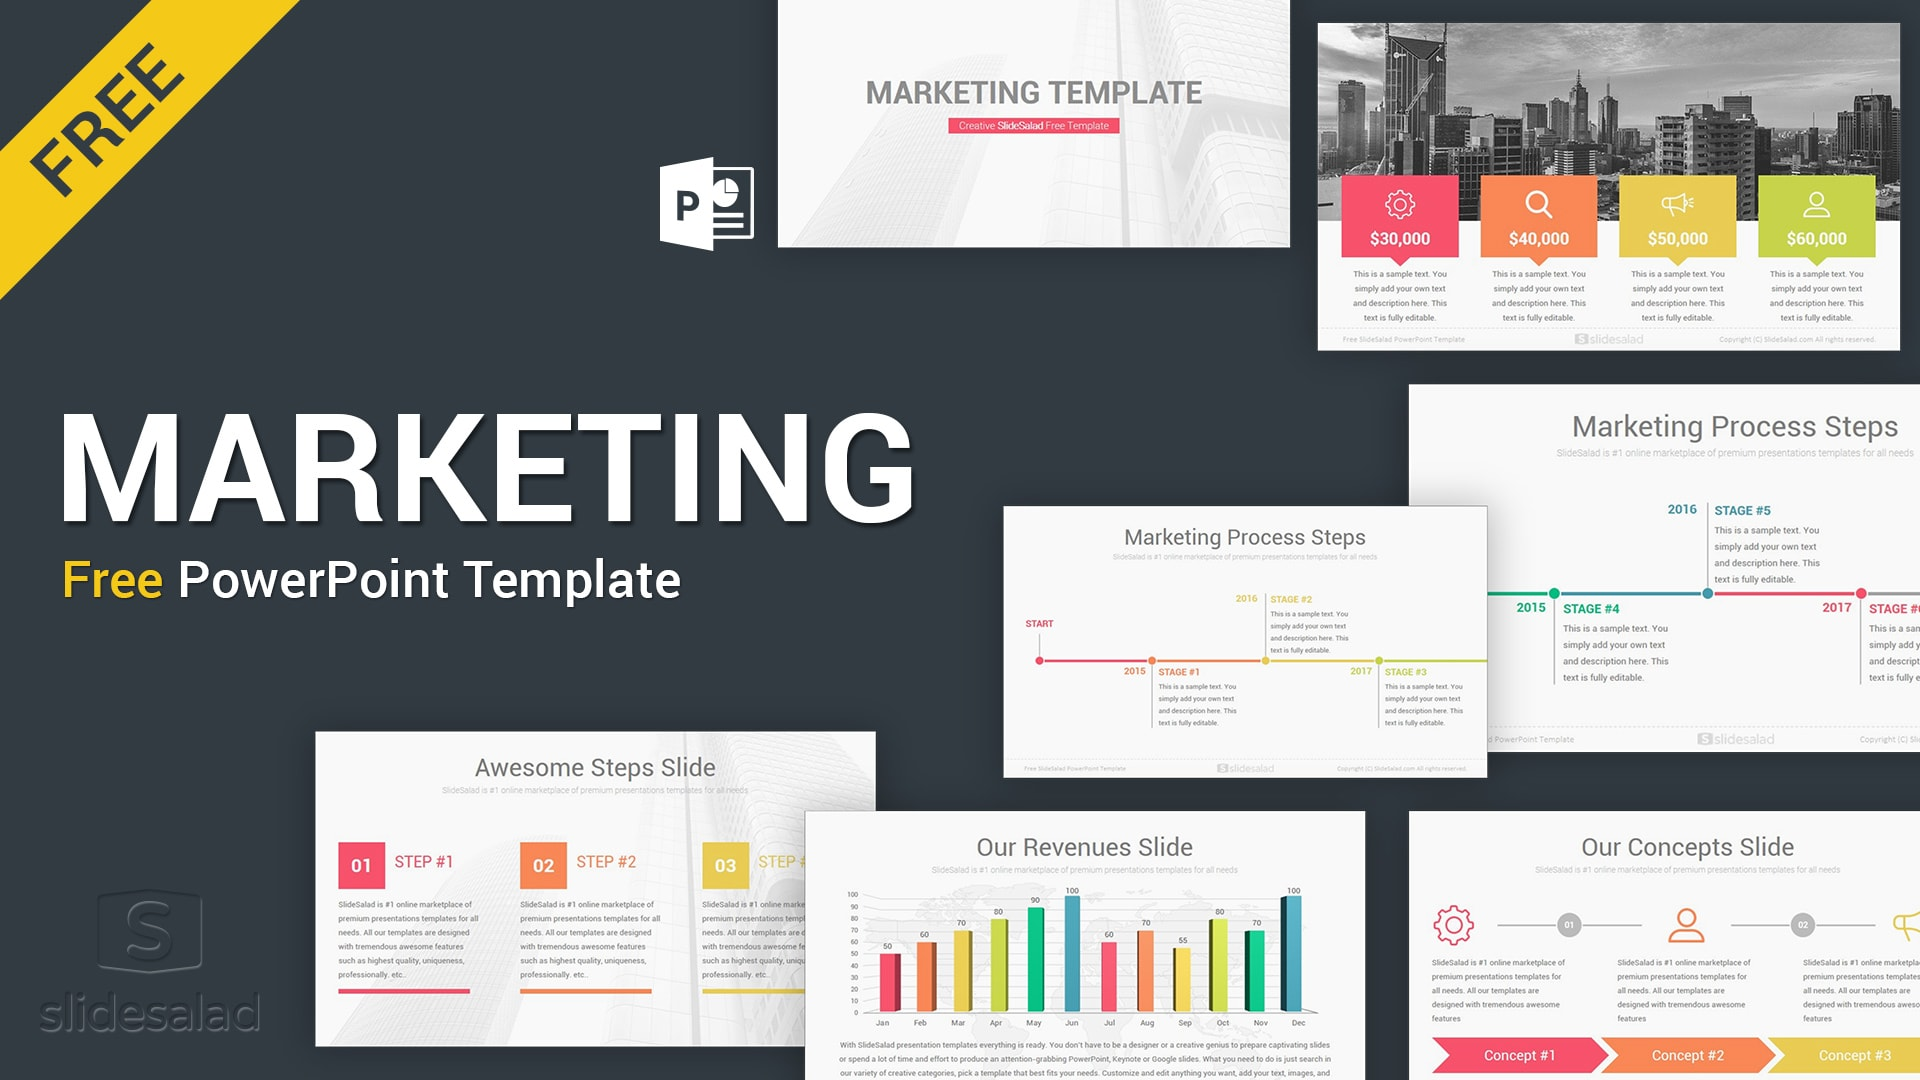 Free Marketing PowerPoint Templates – Online and Offline Marketing Theme for PPT Presentations